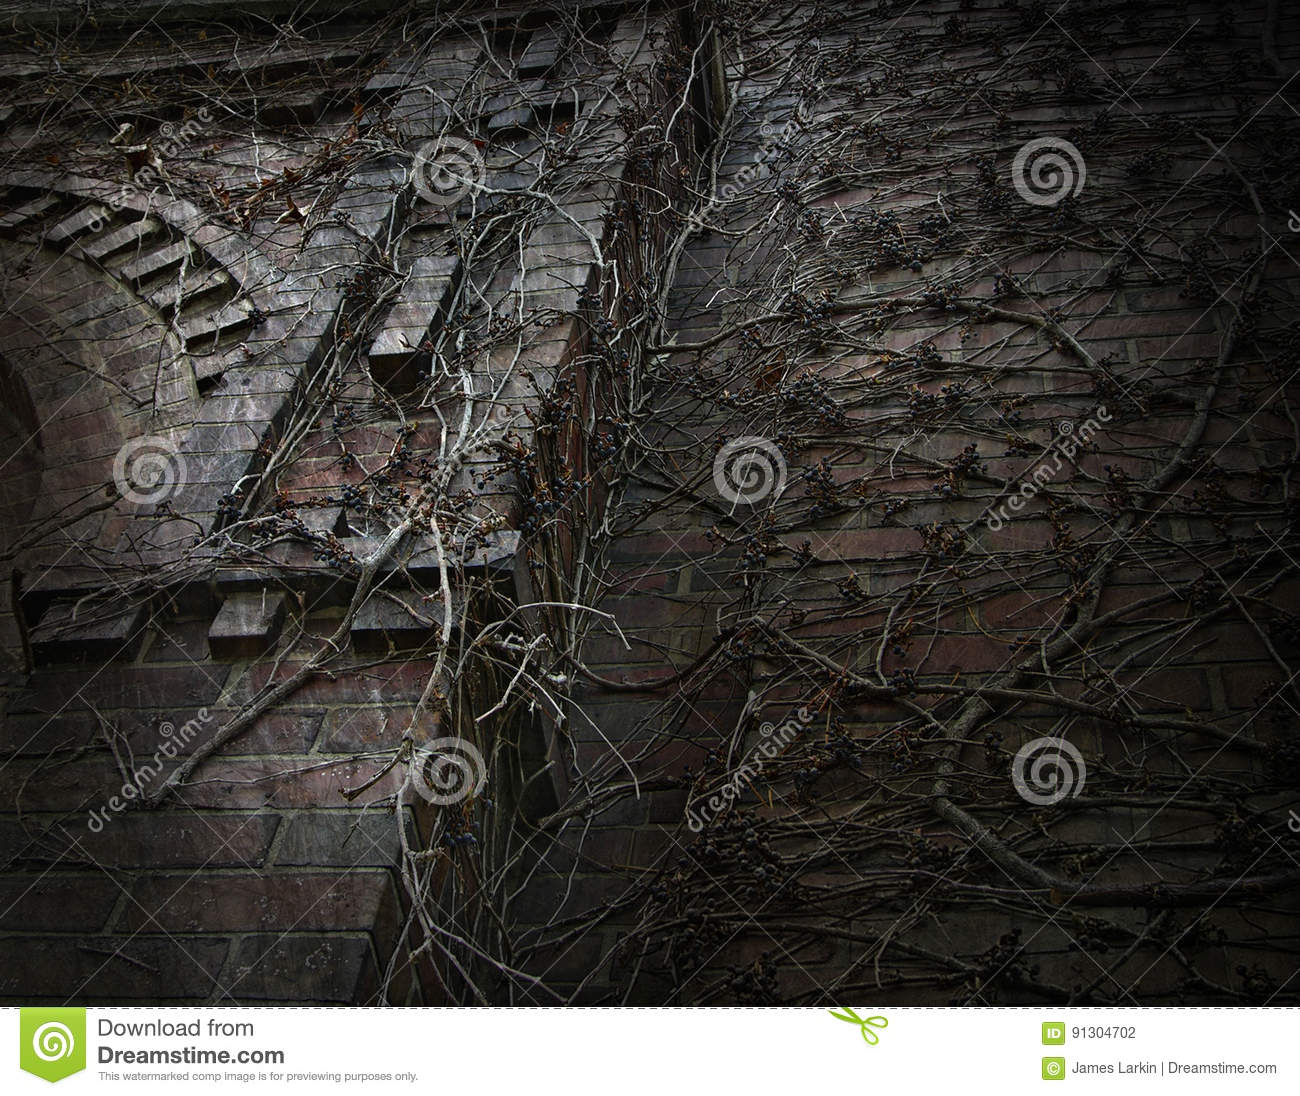 Download Dark Gothic Vine Covered Wall Stock Photo